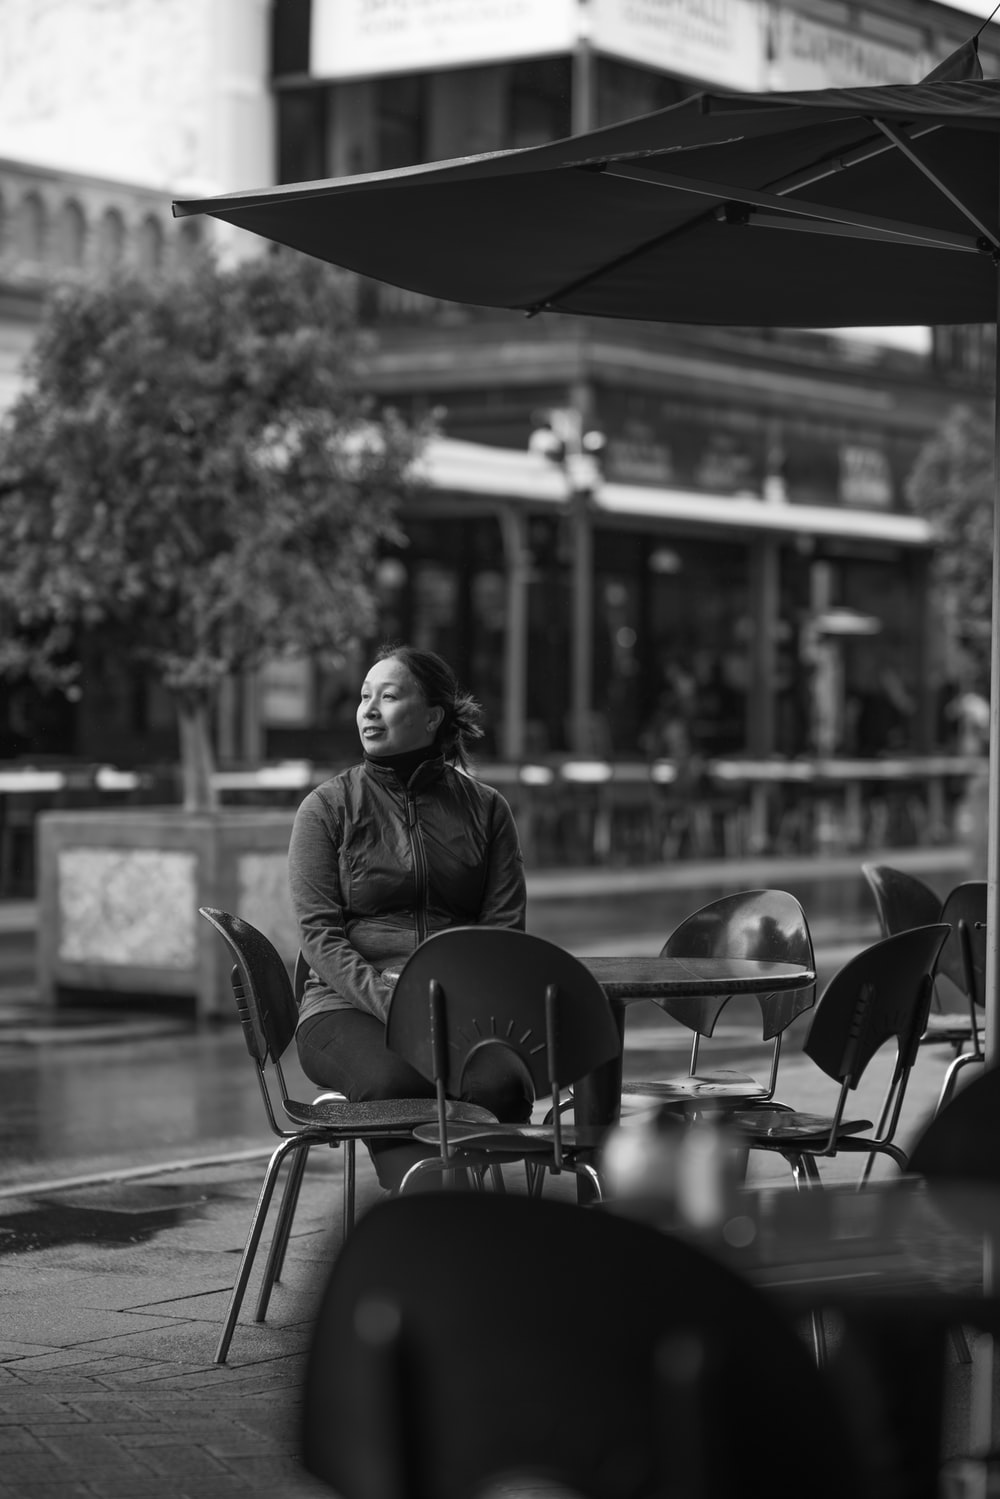 grayscale photo of woman sitting on chair